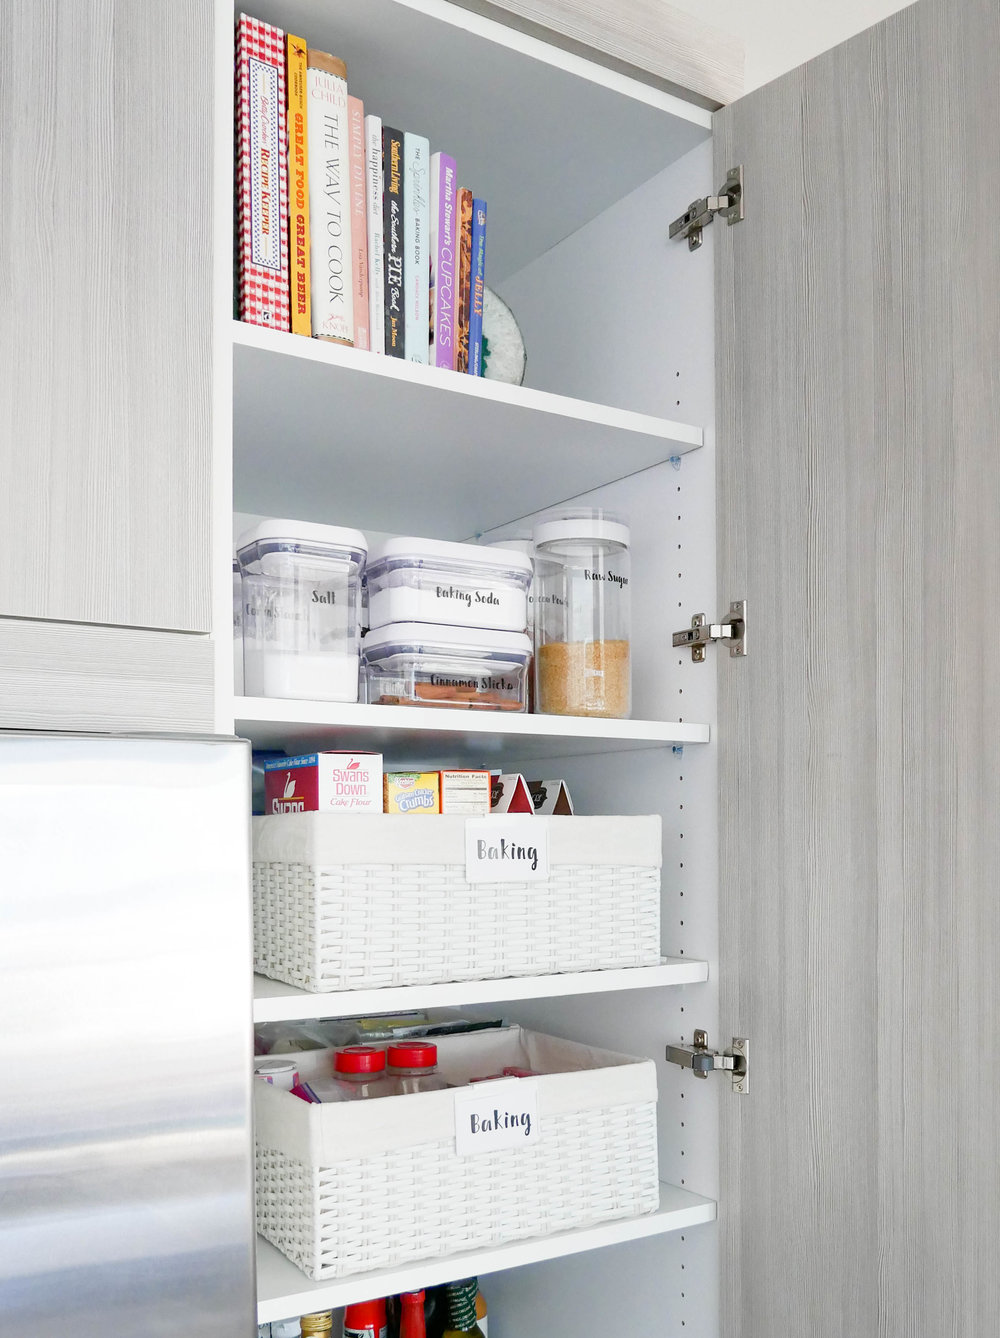 "Each organization project is custom to the individual client's wants, needs and lifestyle. Caitlin is an amazing baker so we made her baking supplies a priority in the ""valuable real estate"" a.k.a. the eye-level shelves."